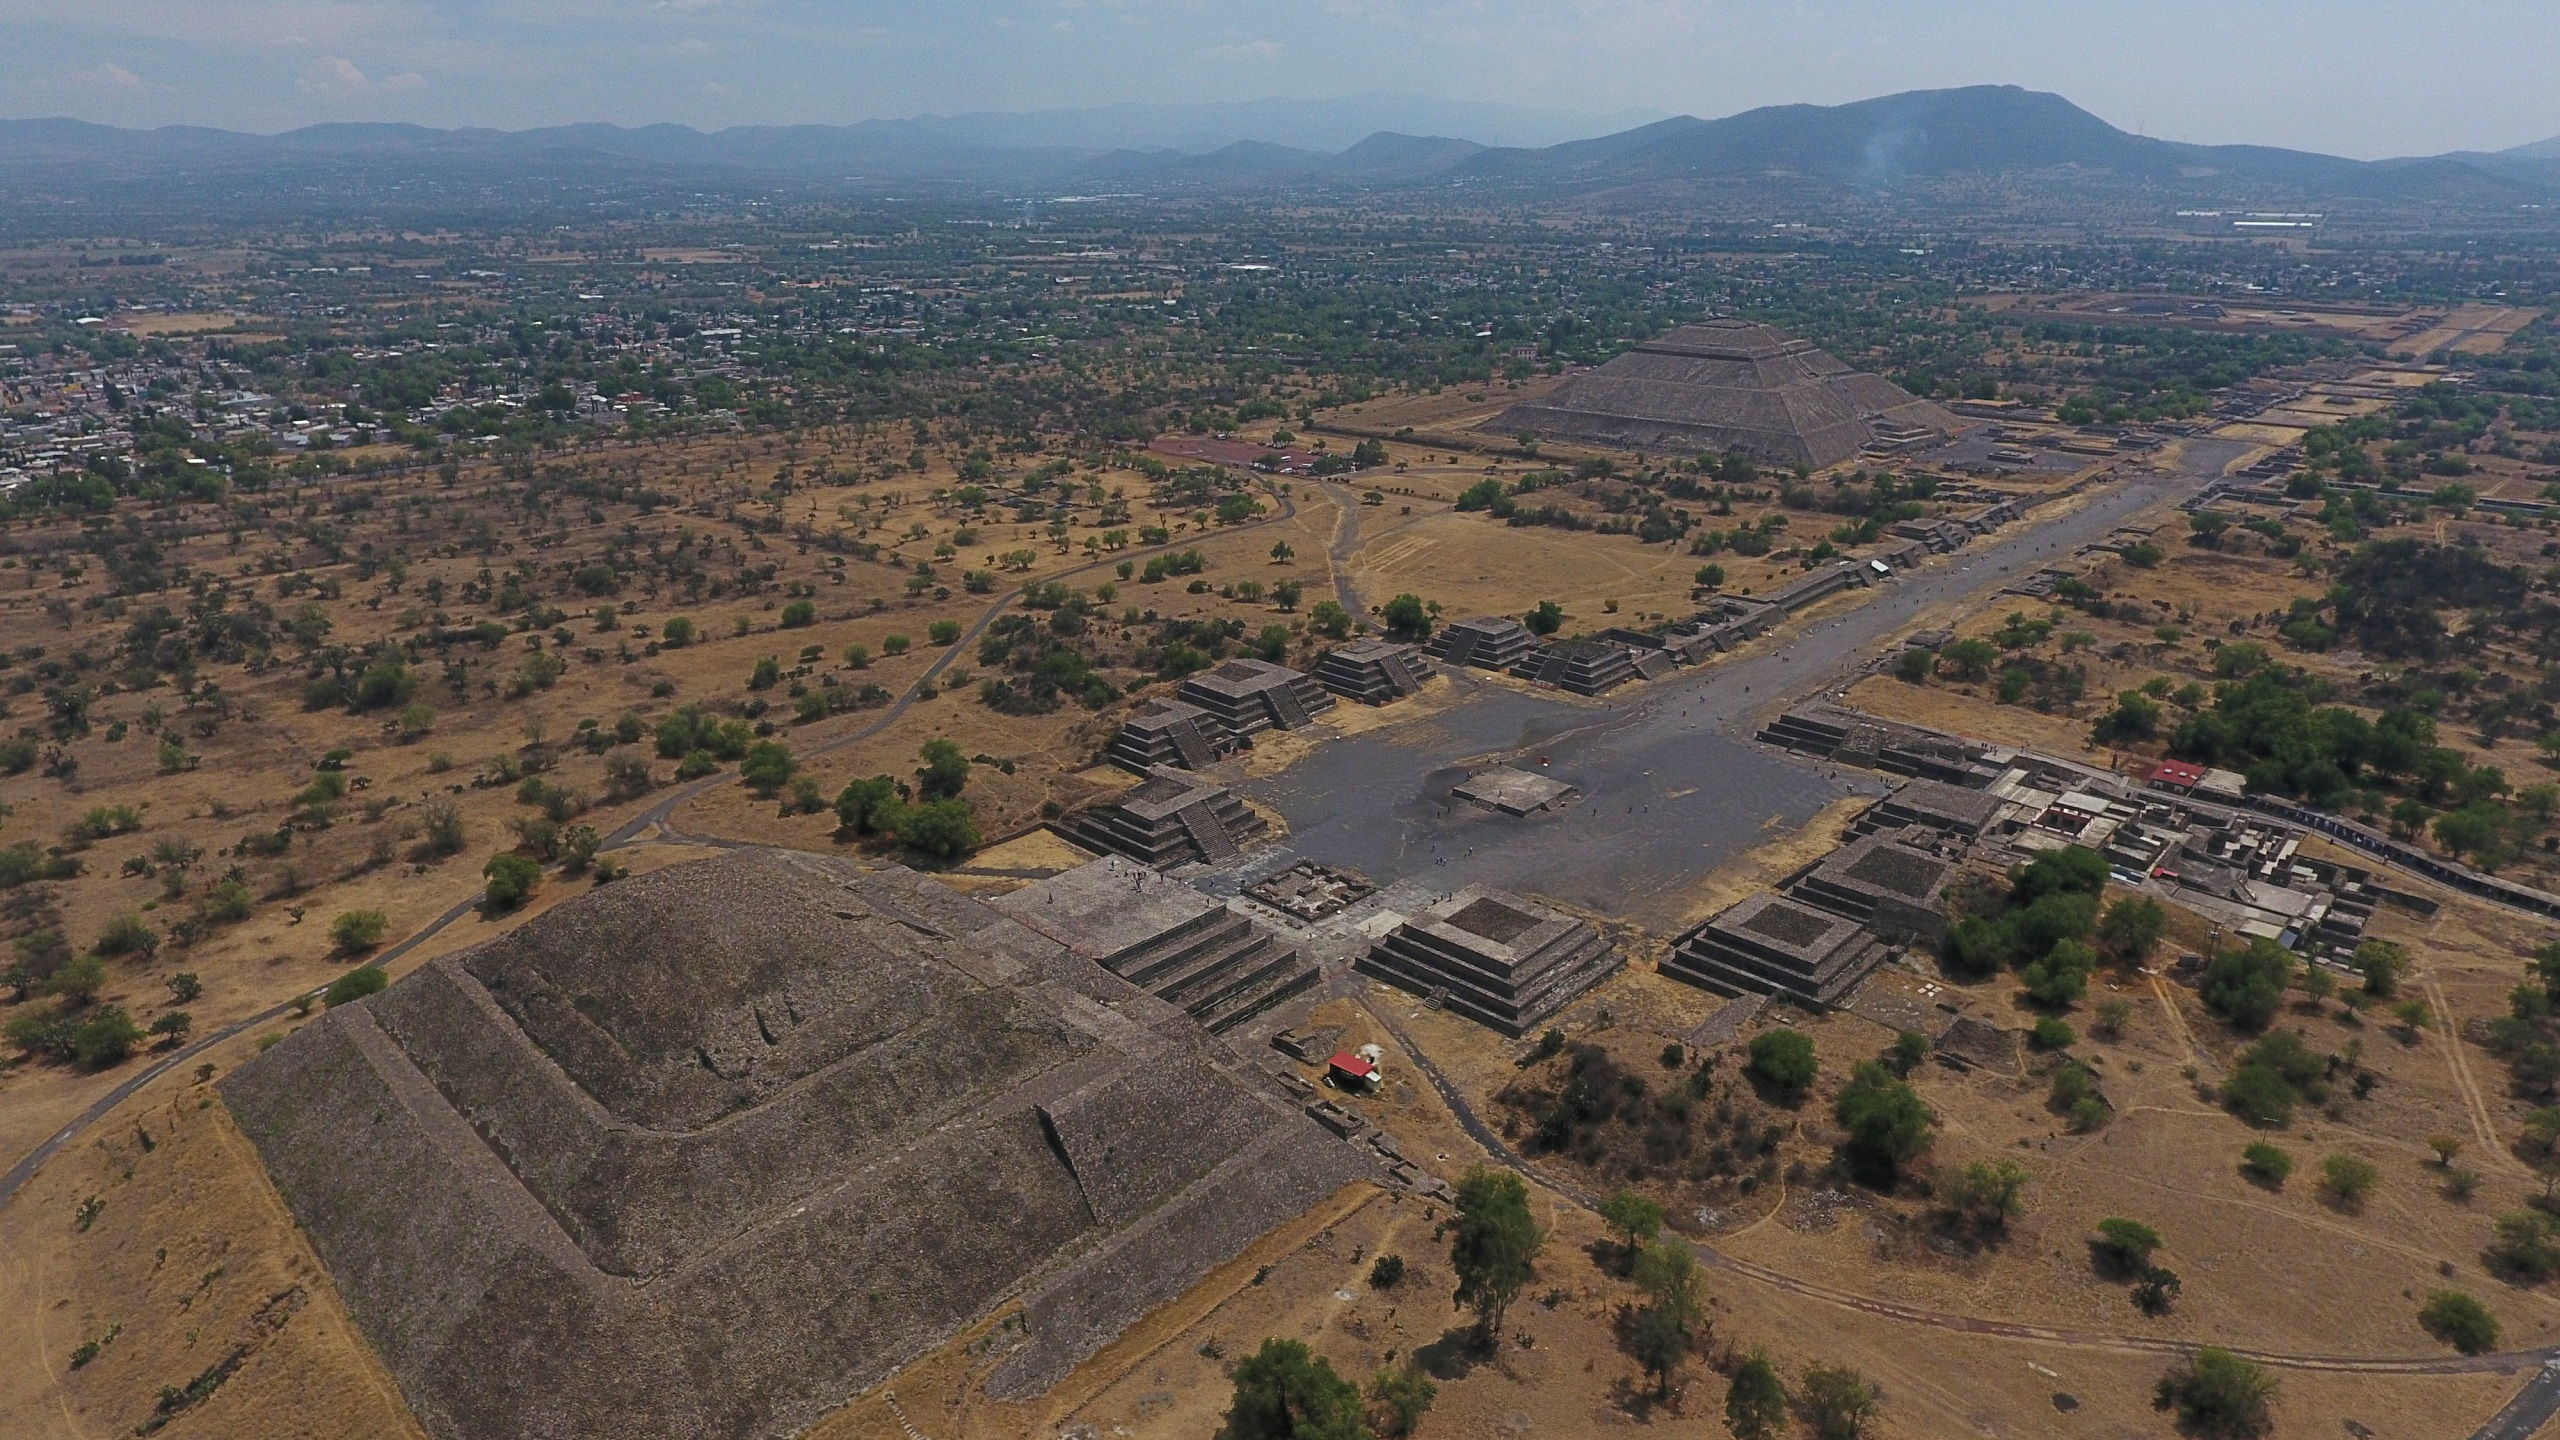 The Pyramid of the Moon, left, and the Pyramid of the Sun, back right, are seen along with smaller structures lining the Avenue of the Dead, in Teotihuacan, Mexico, on March 19, 2020. (Rebecca Blackwell / Associated Press)